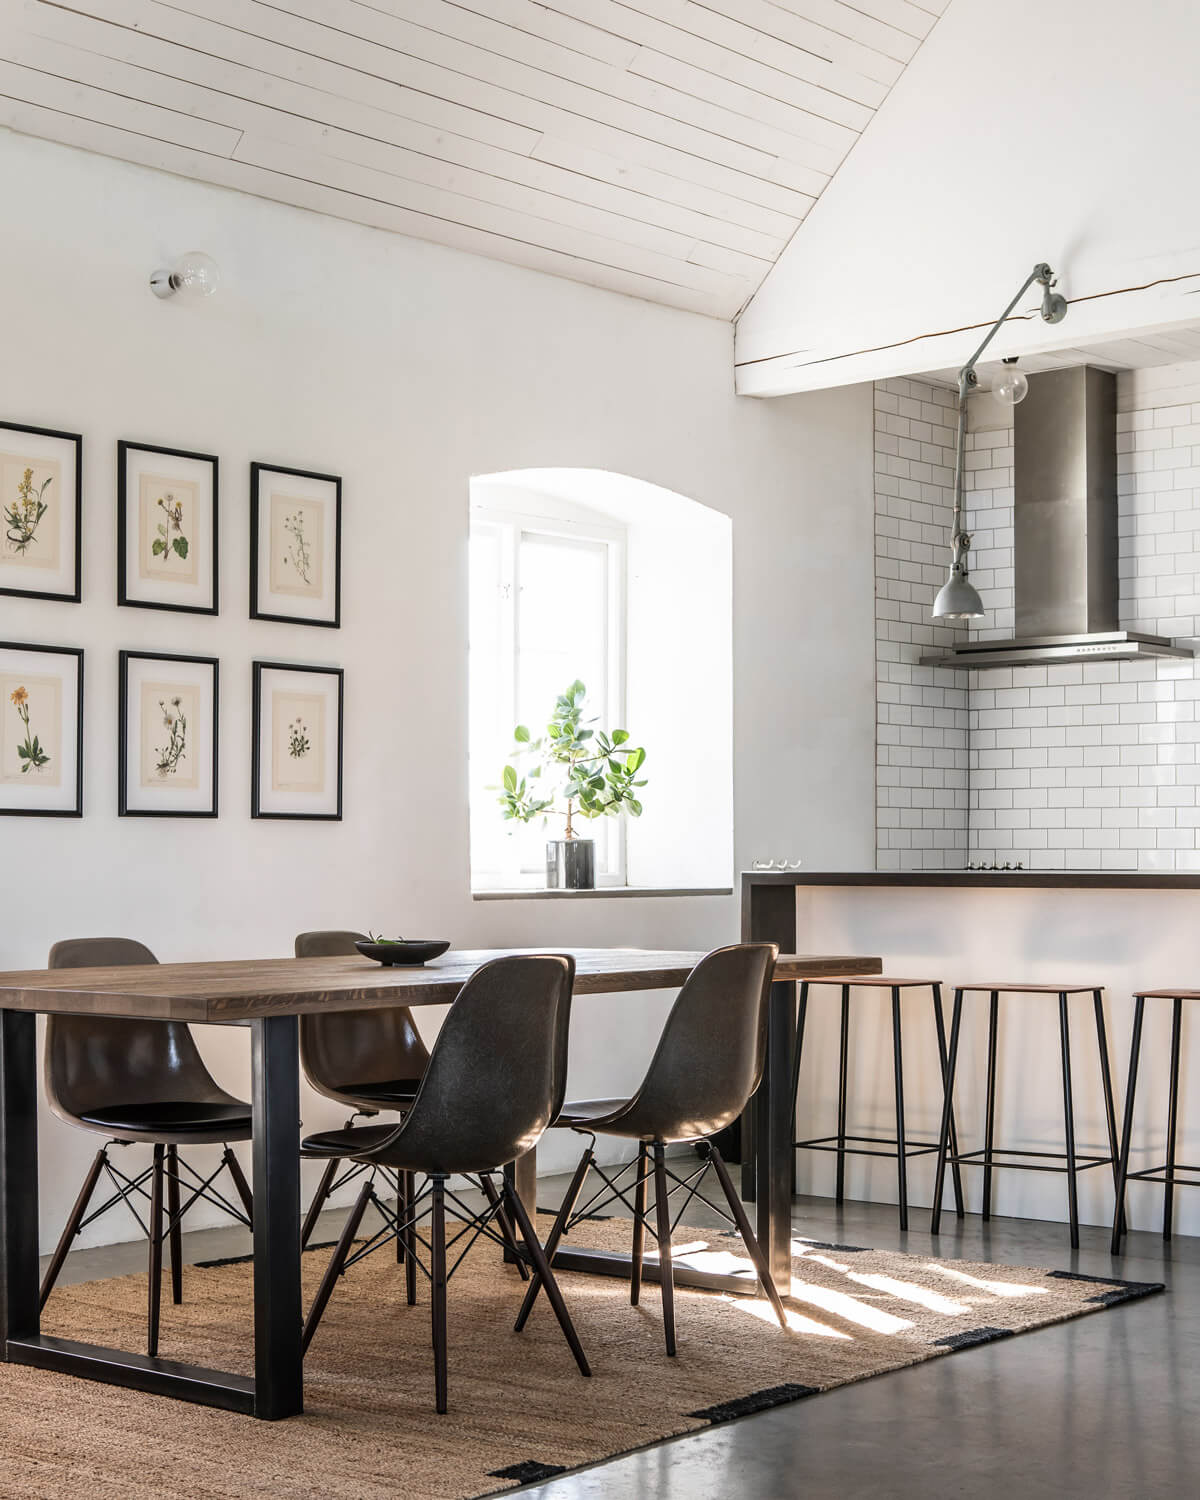 Jute Egde in Black shown in a sunny contemporary barn house kitchen.